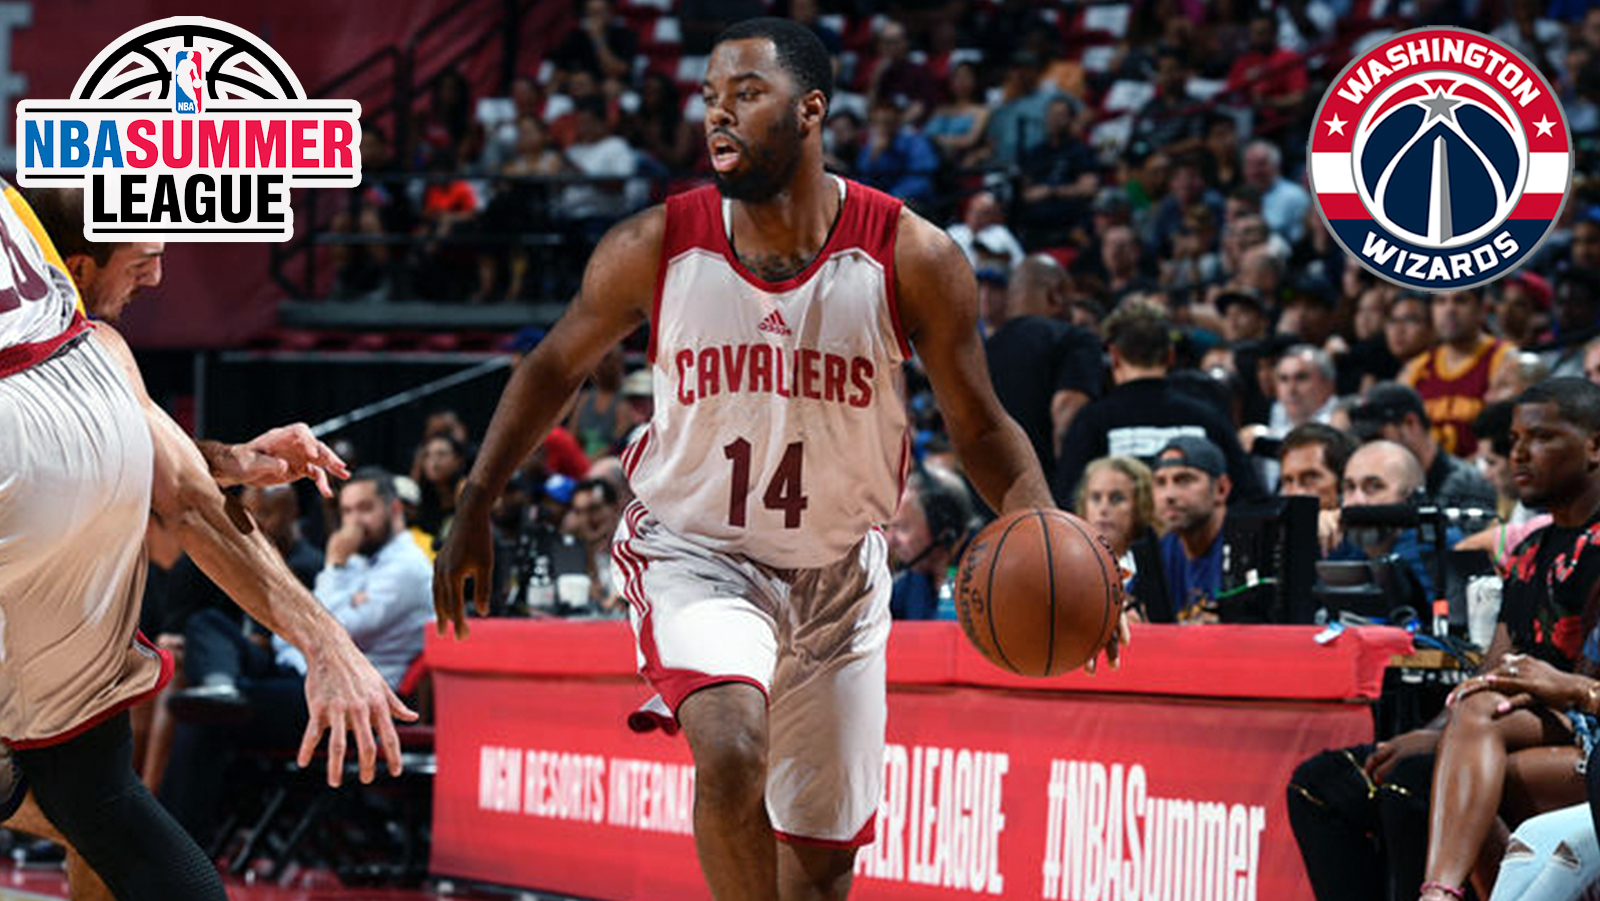 9fca1d80be5 Cassell To Play For Washington Wizards NBA Summer League Team - Iona ...